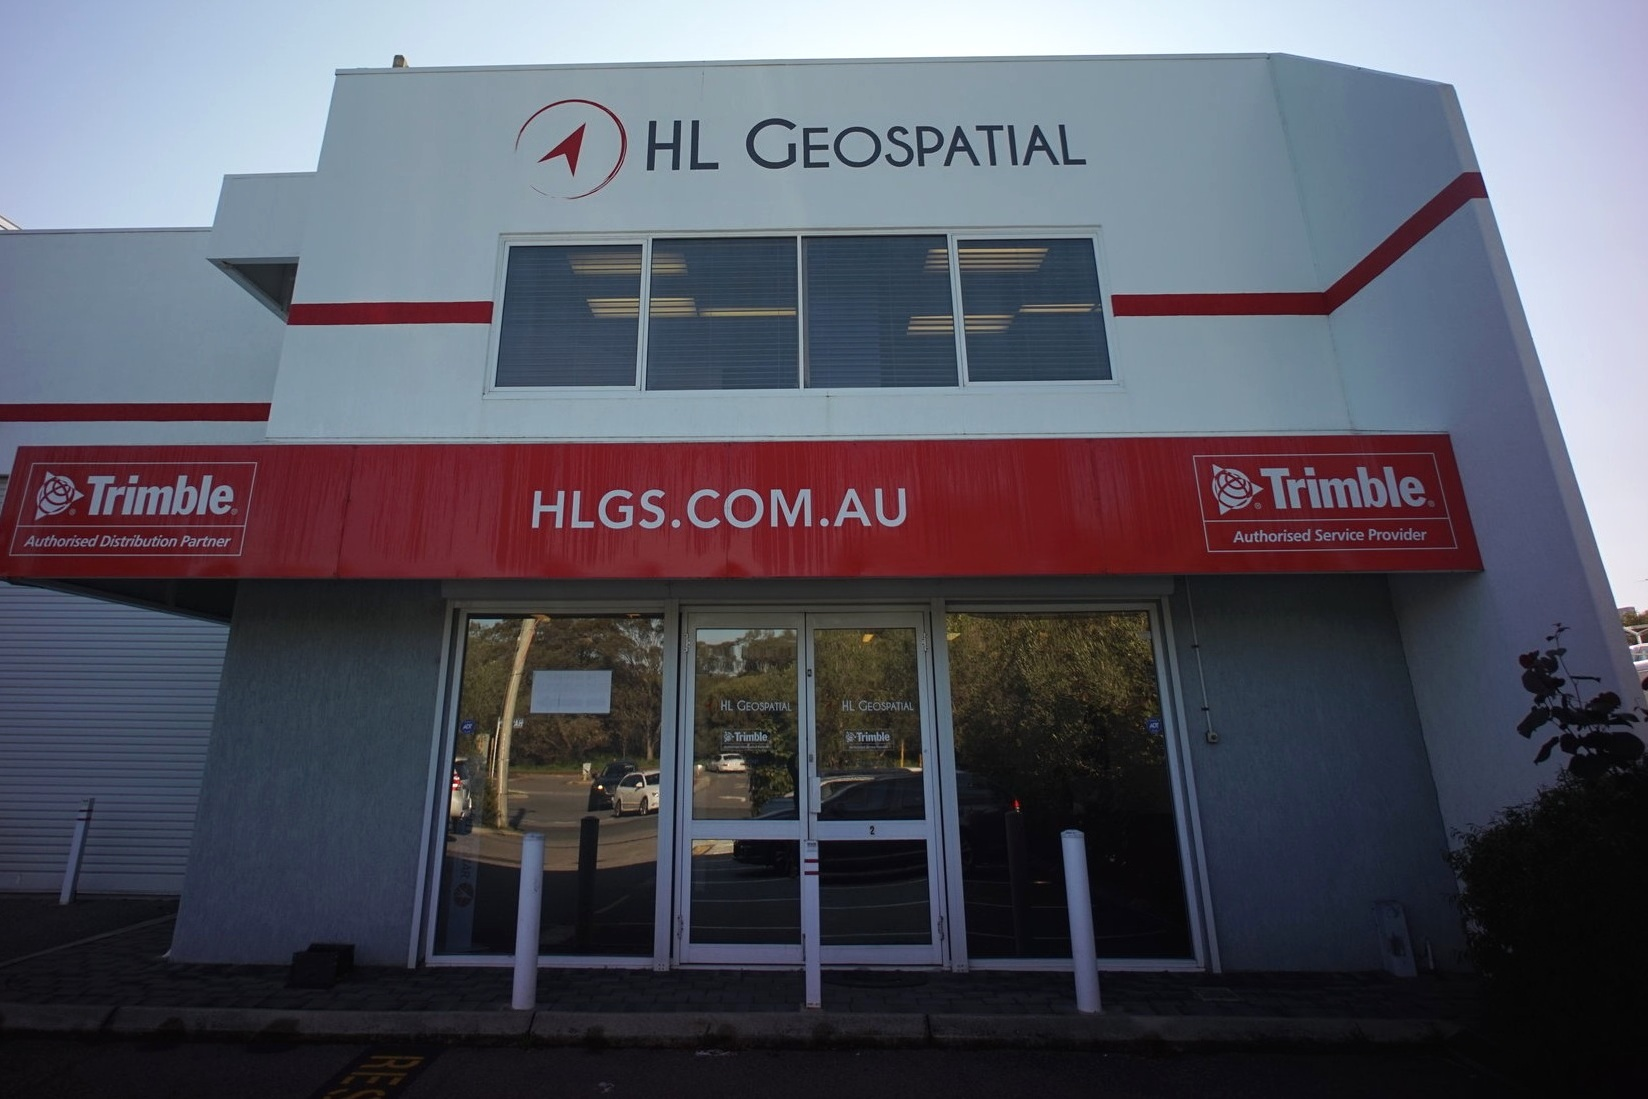 About Us - HL Geospatial is Western Australia's most respected name in geospatial technology – geospatial referring to the collection, recording, interpretation and application of positional data.